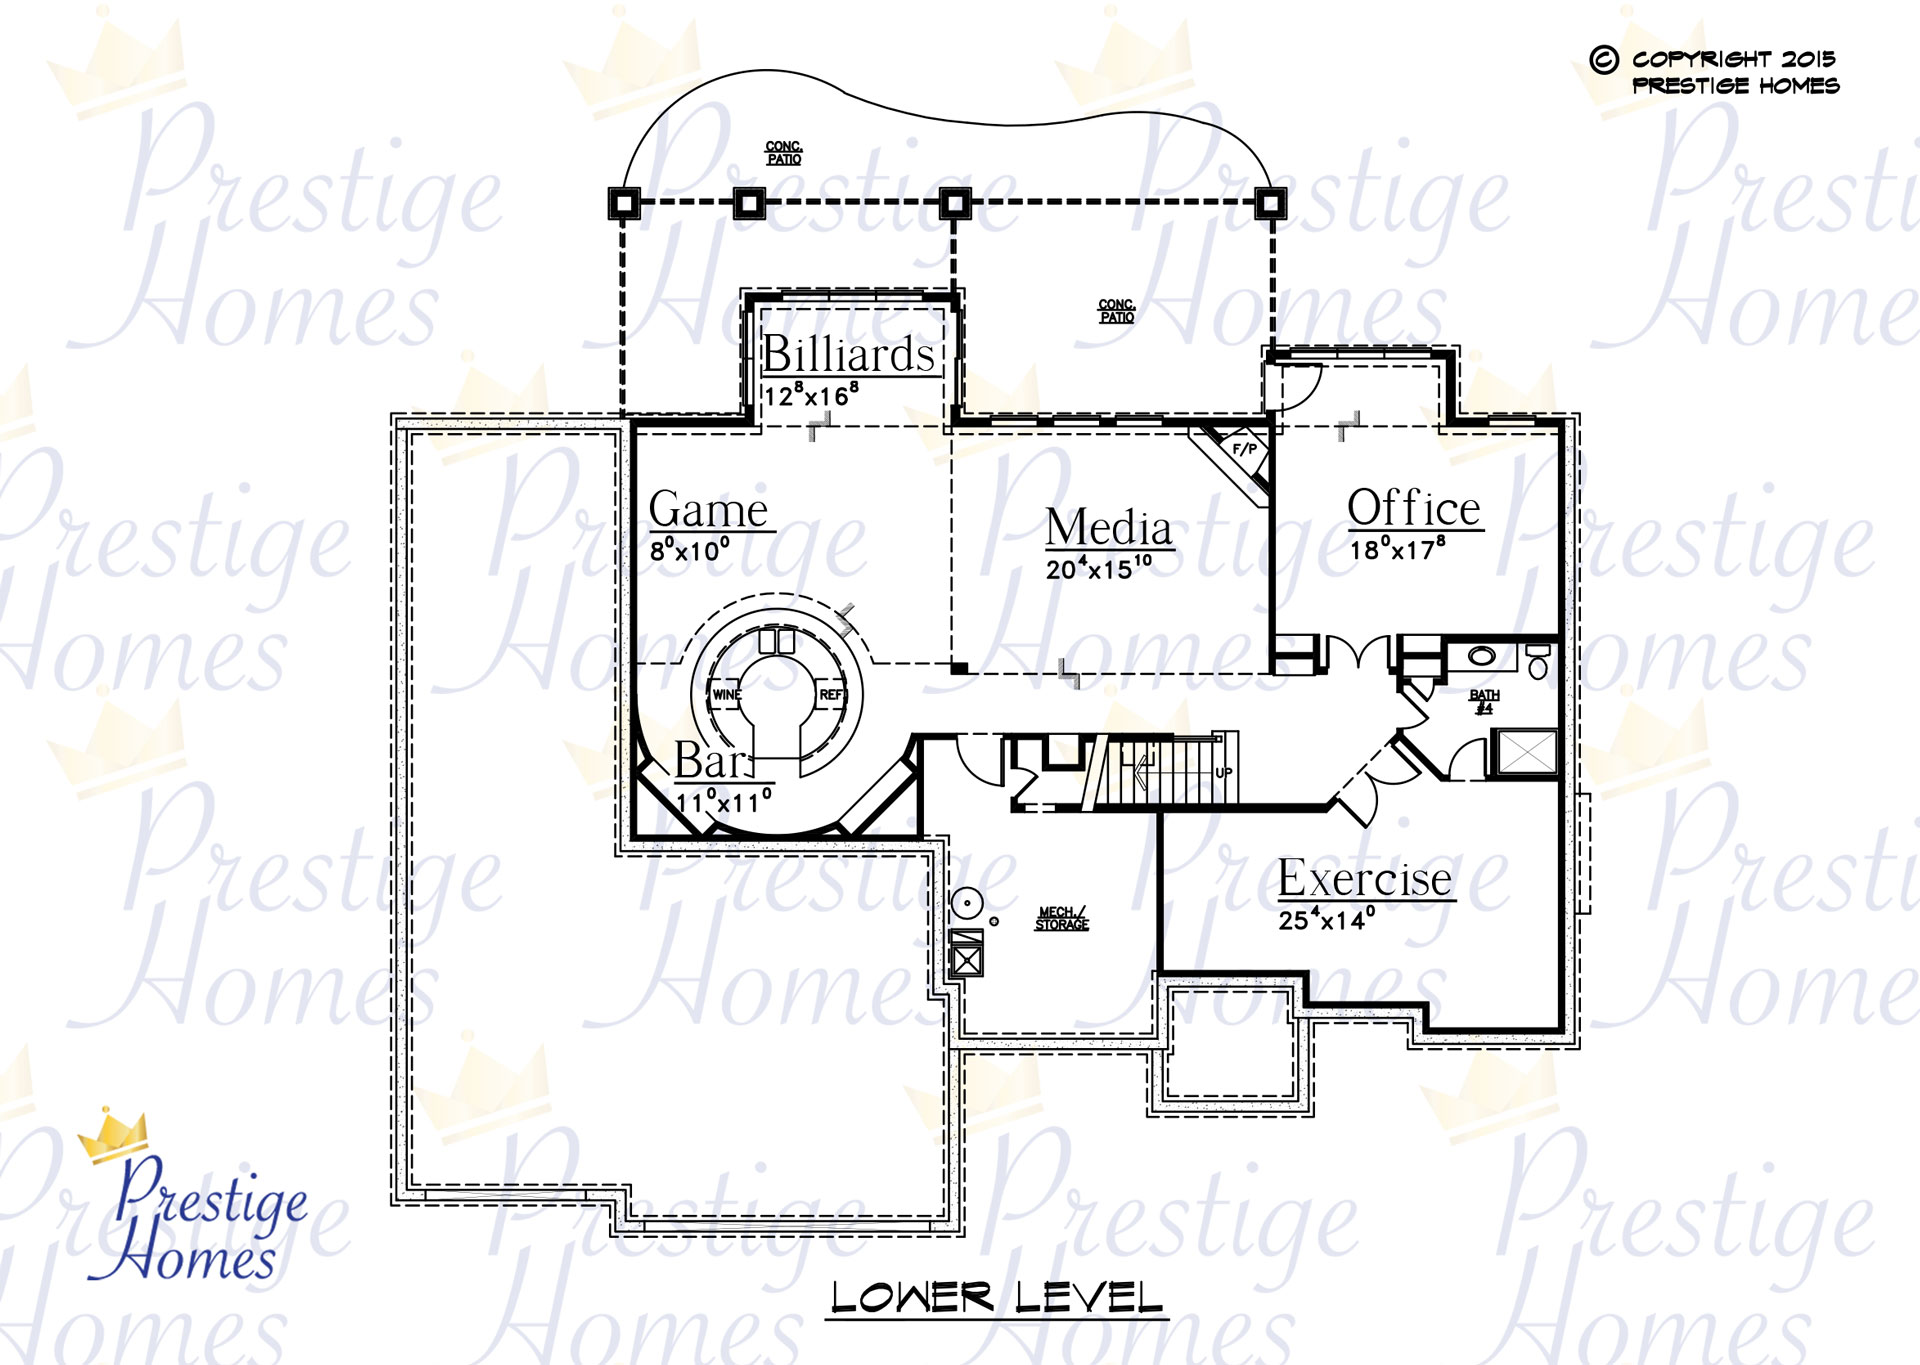 Prestige Homes - Floor Plan - Bella SOD - Lower